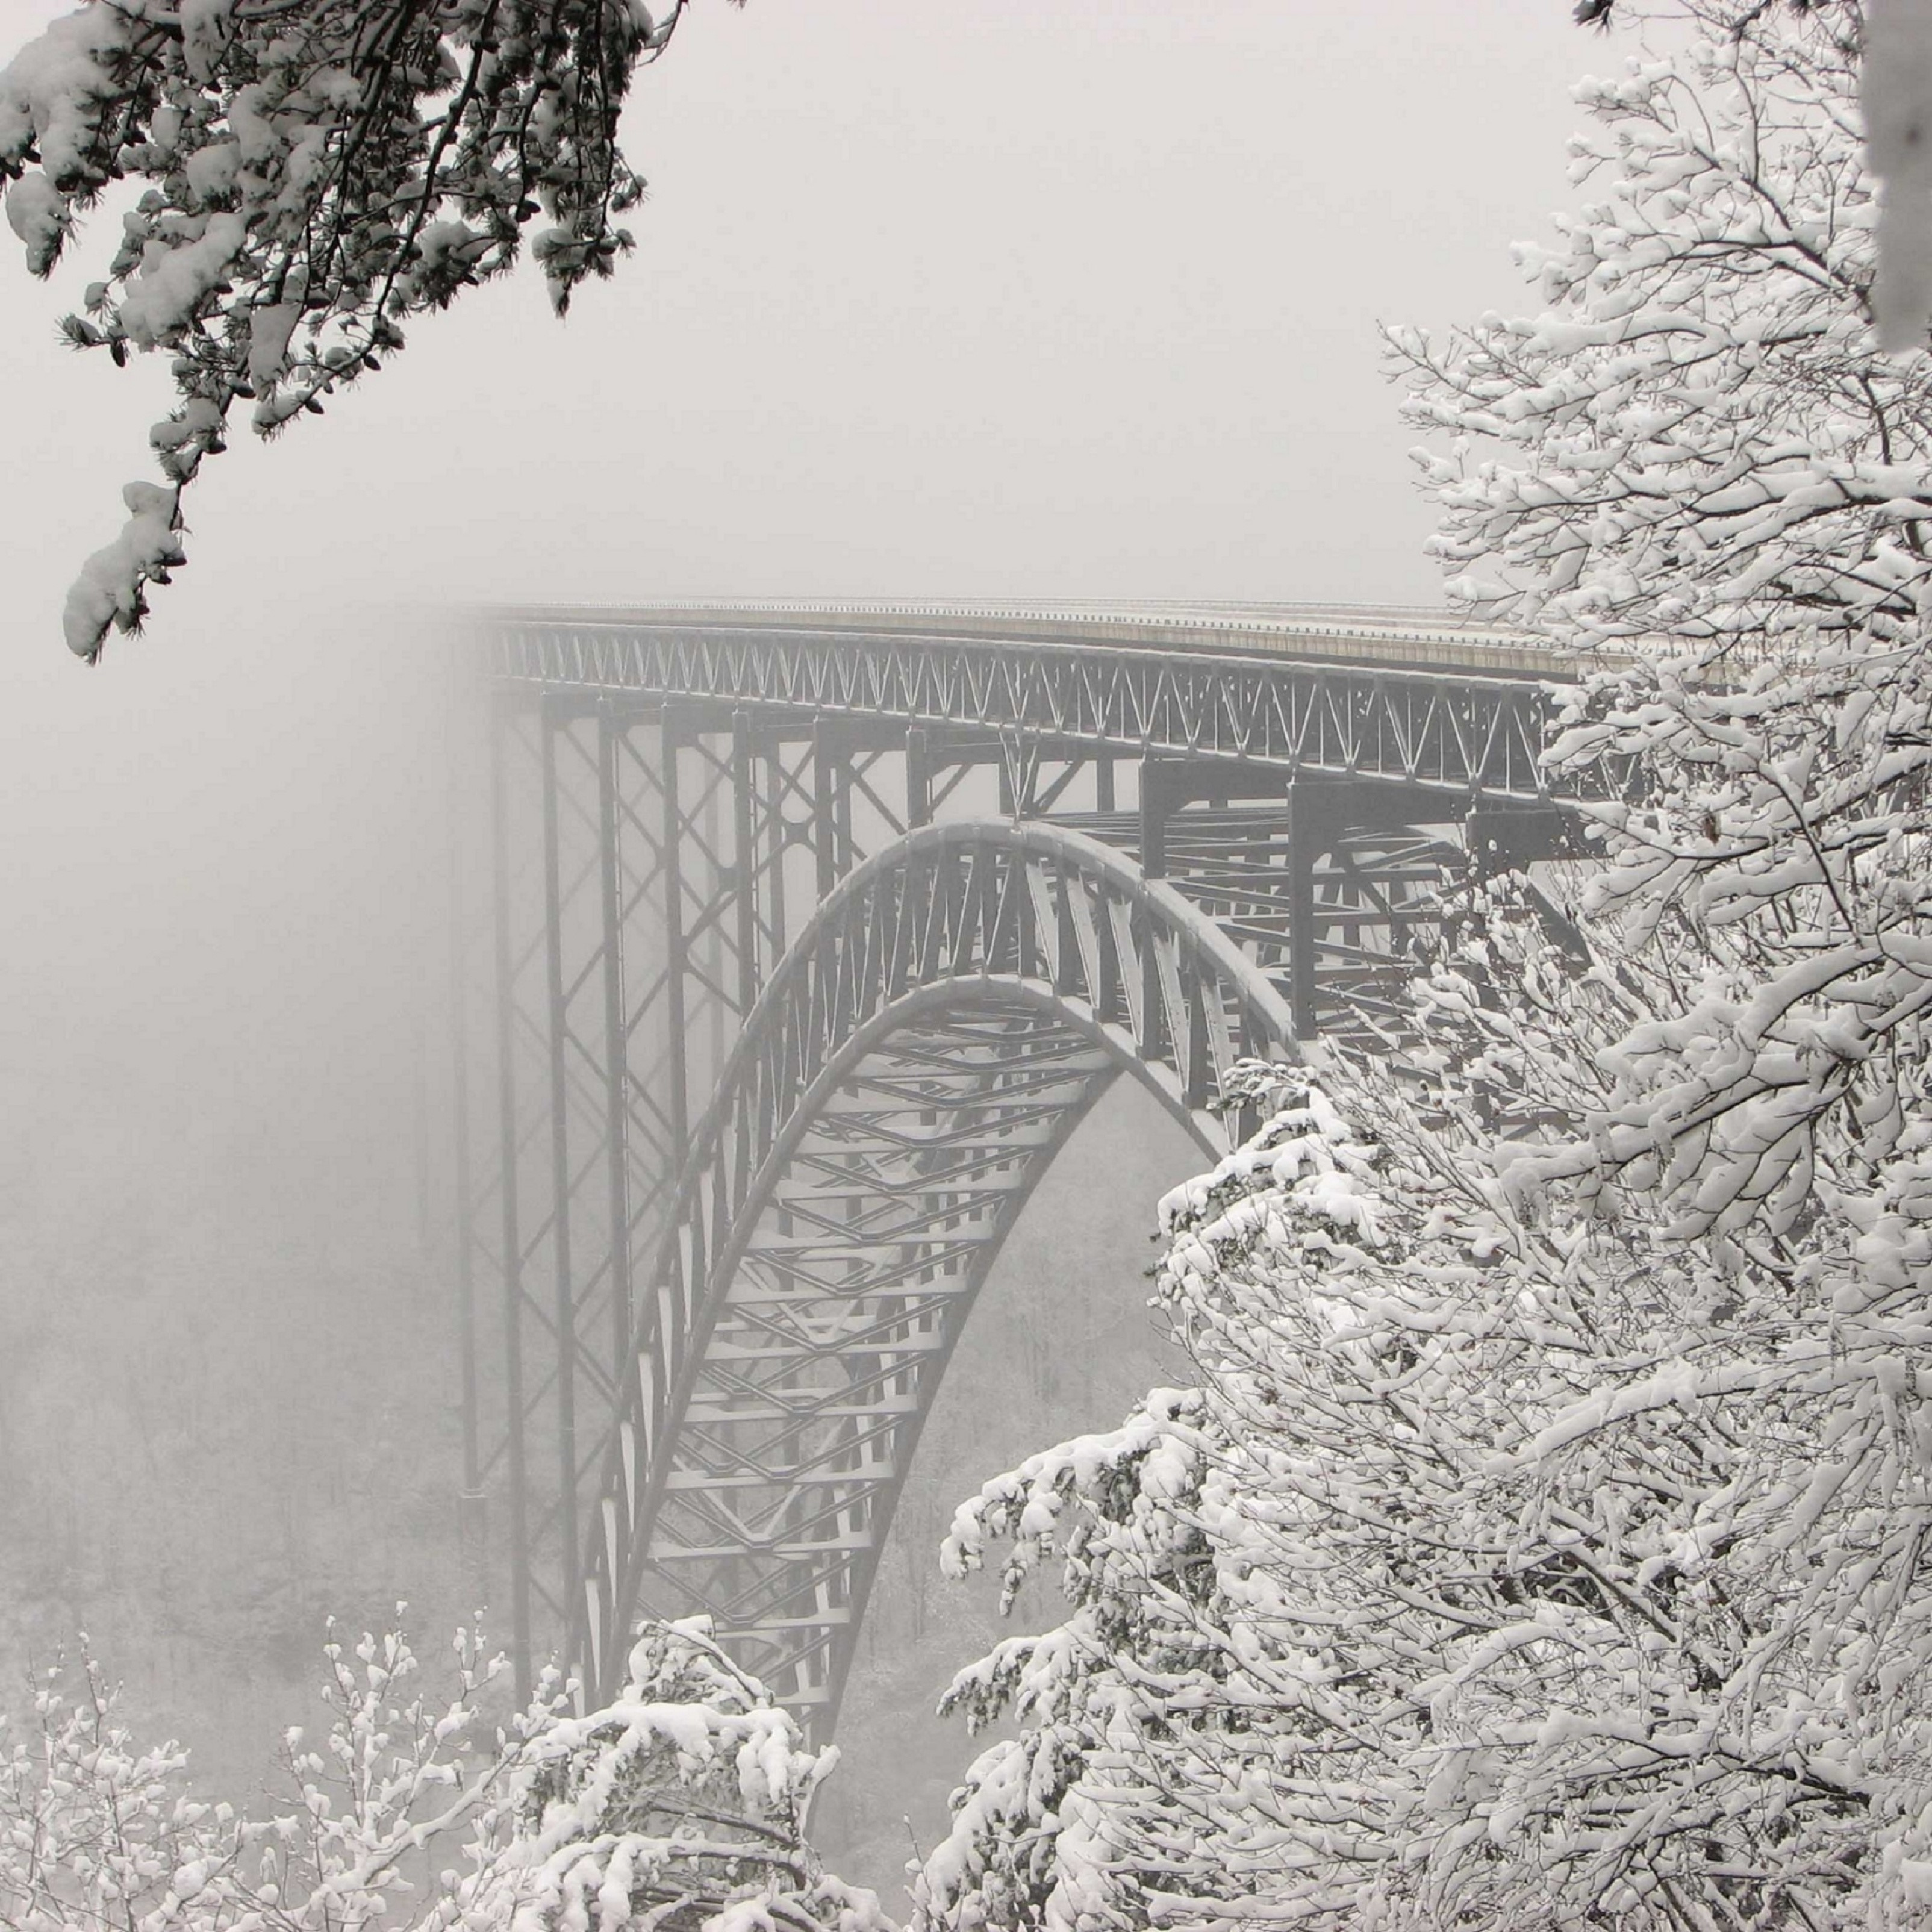 Steel Bridge Winter Snow River iPad Wallpaper